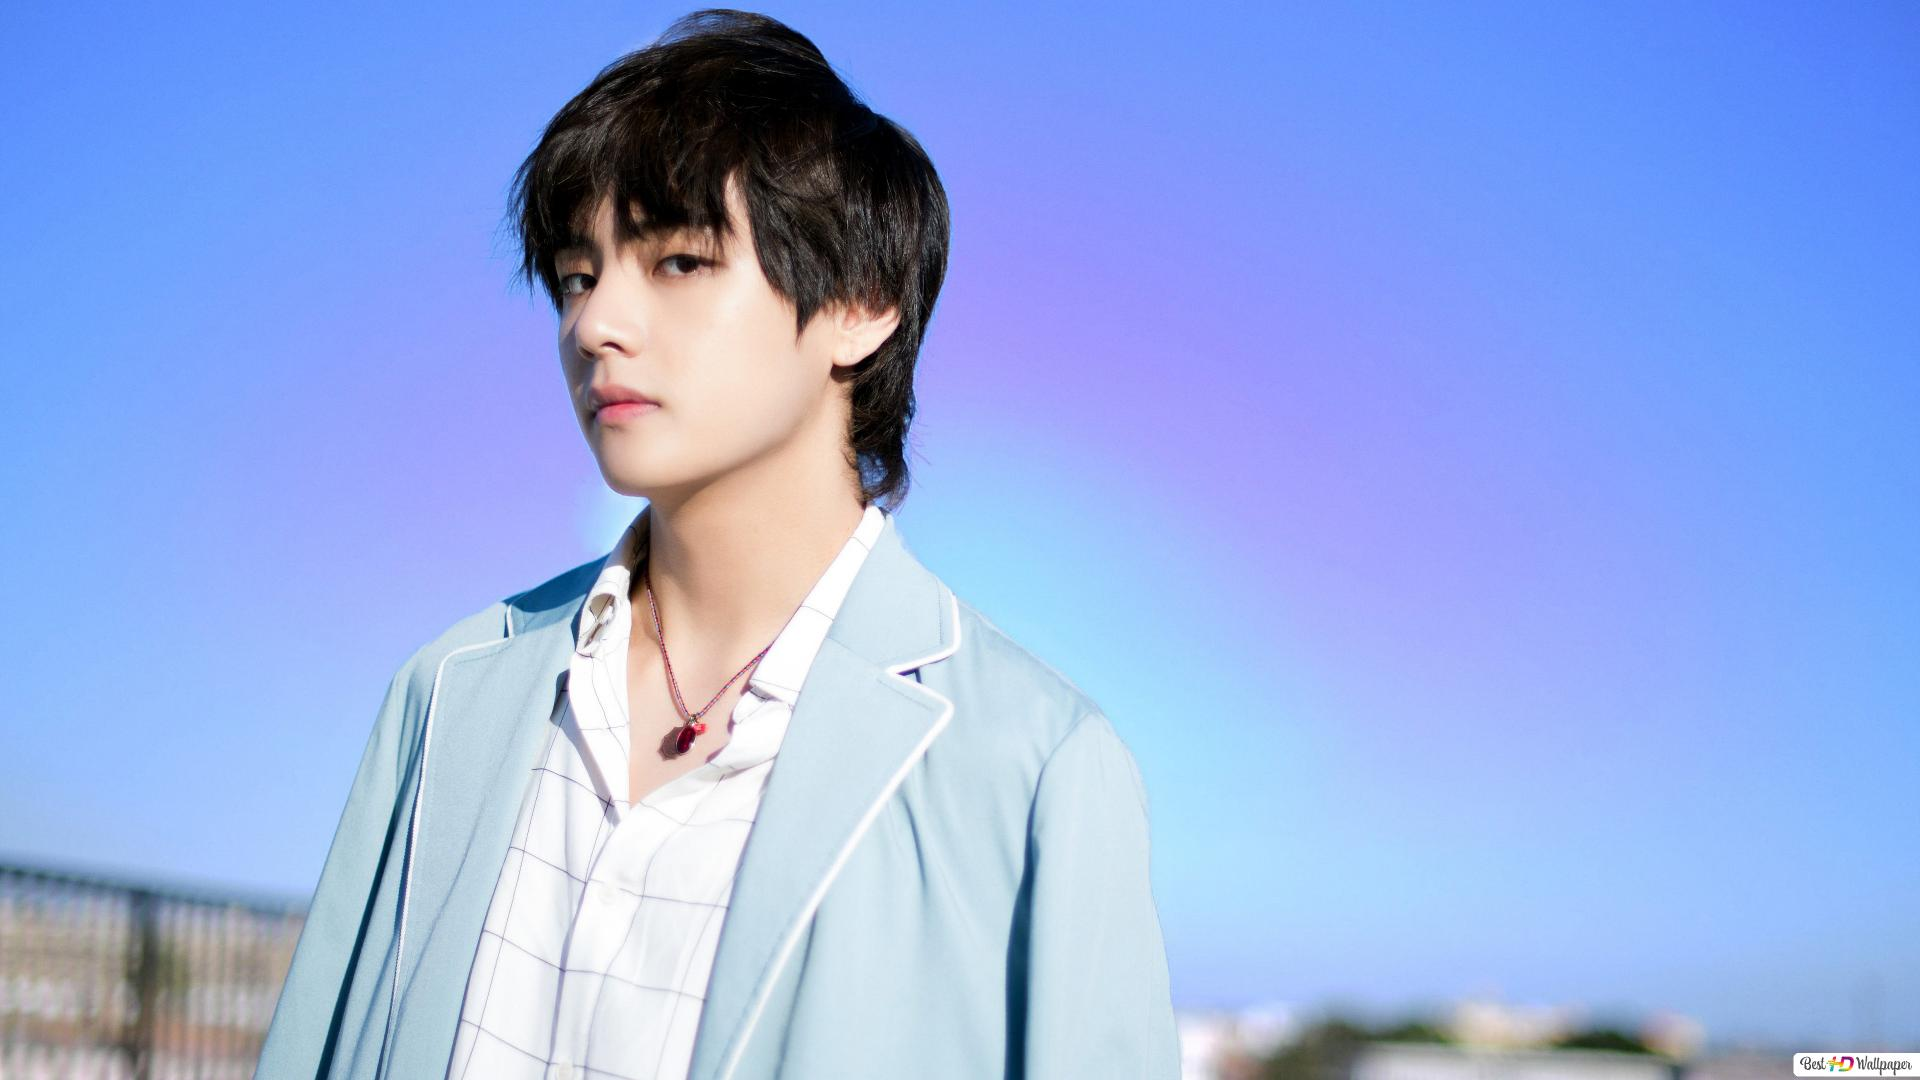 k pop group bts idol v kim tae hyung wallpaper 1920x1080 53645 48